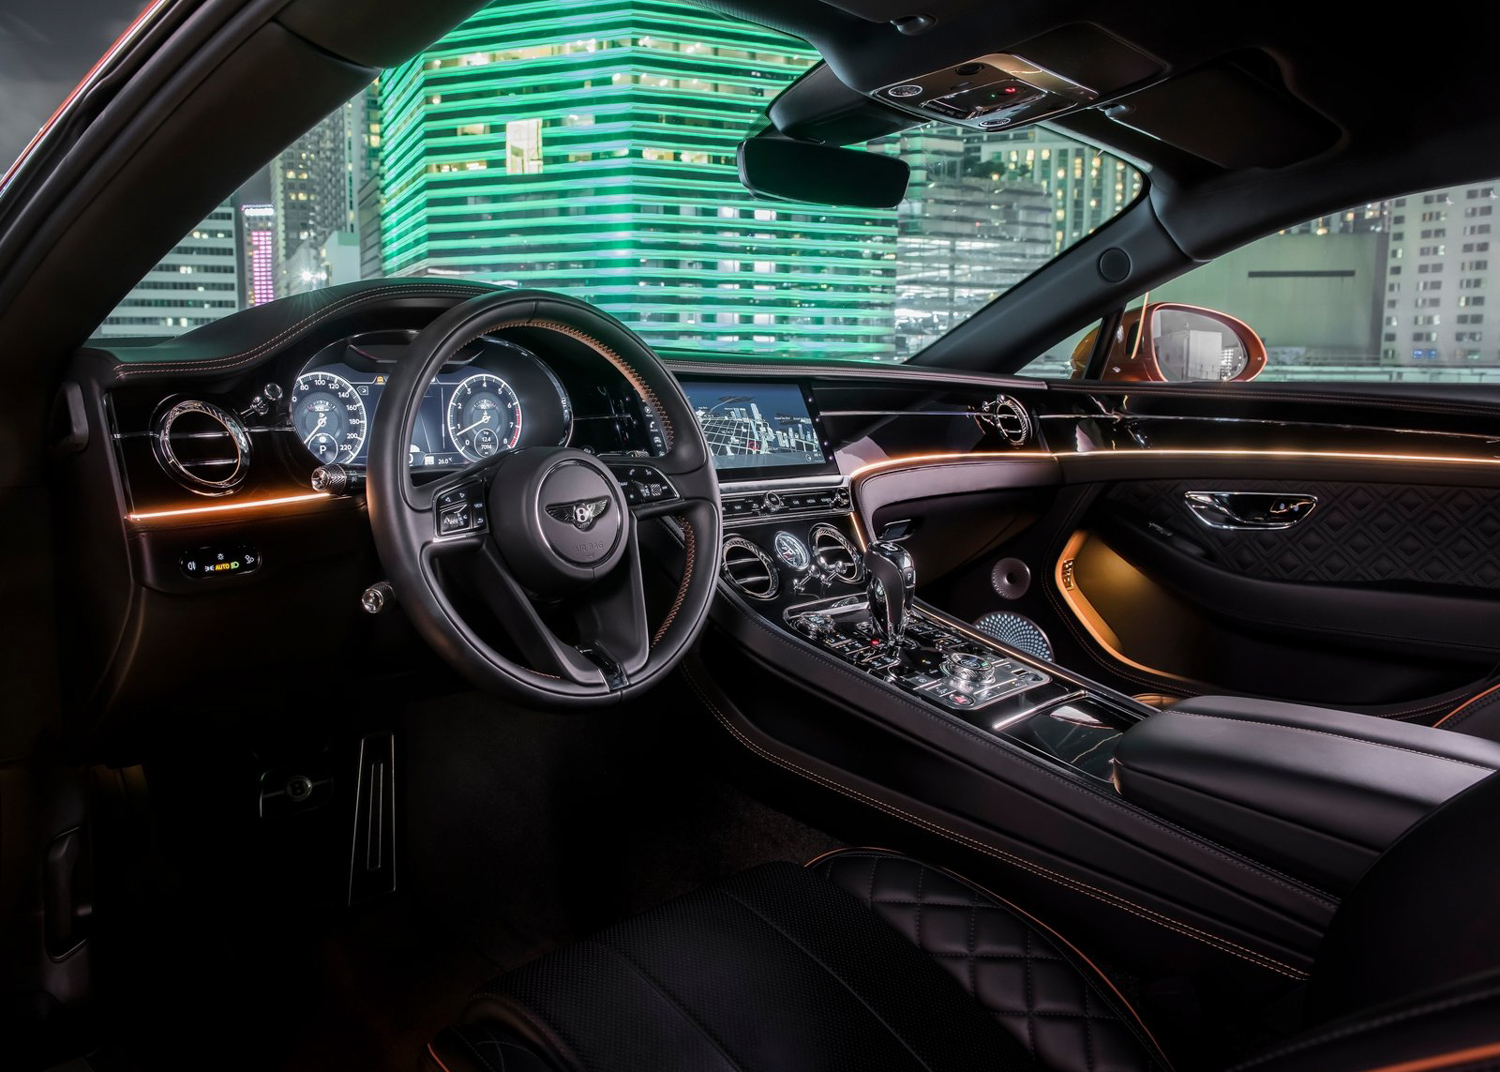 2020 Bentley Continental GT V8 coupe interior orange light